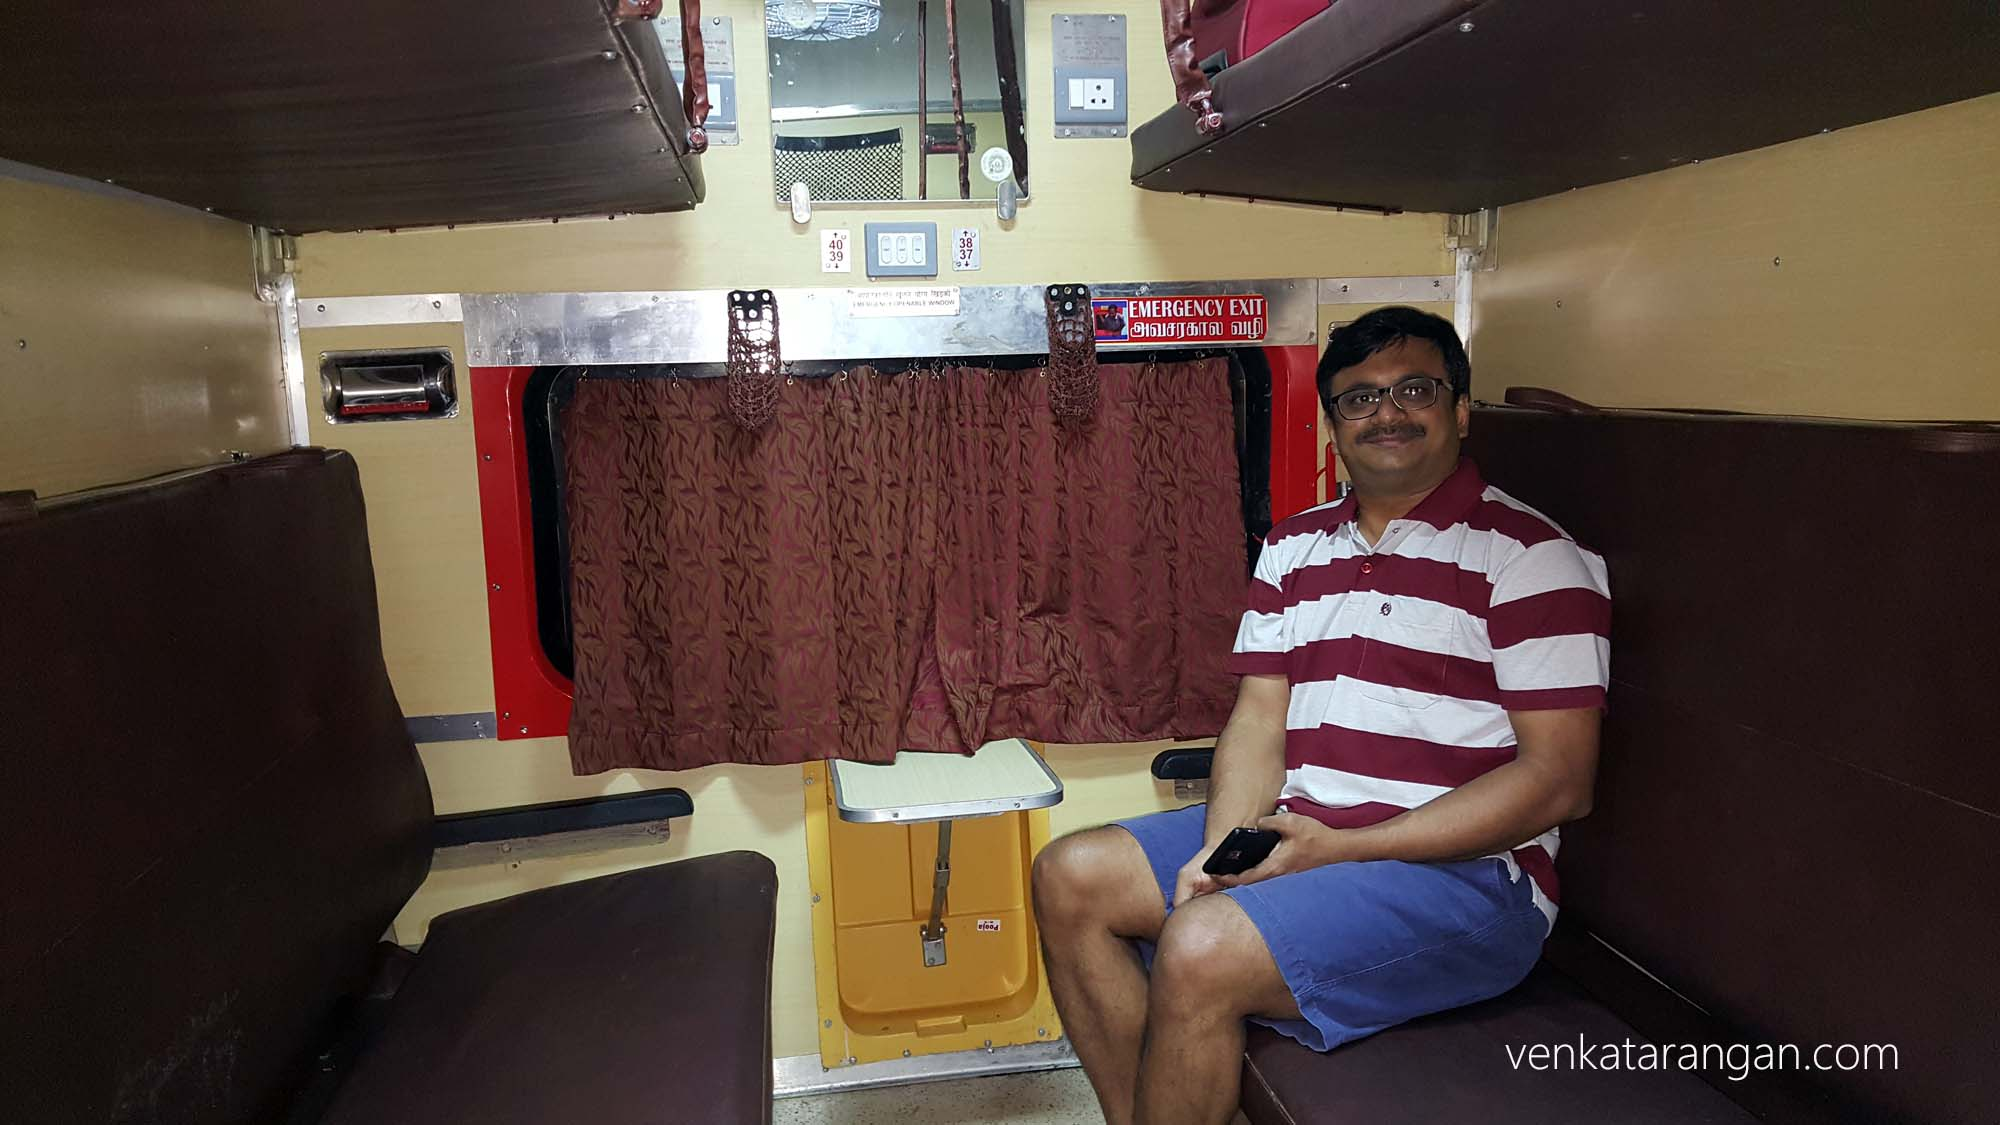 Second AC coaches - Faizabad Express